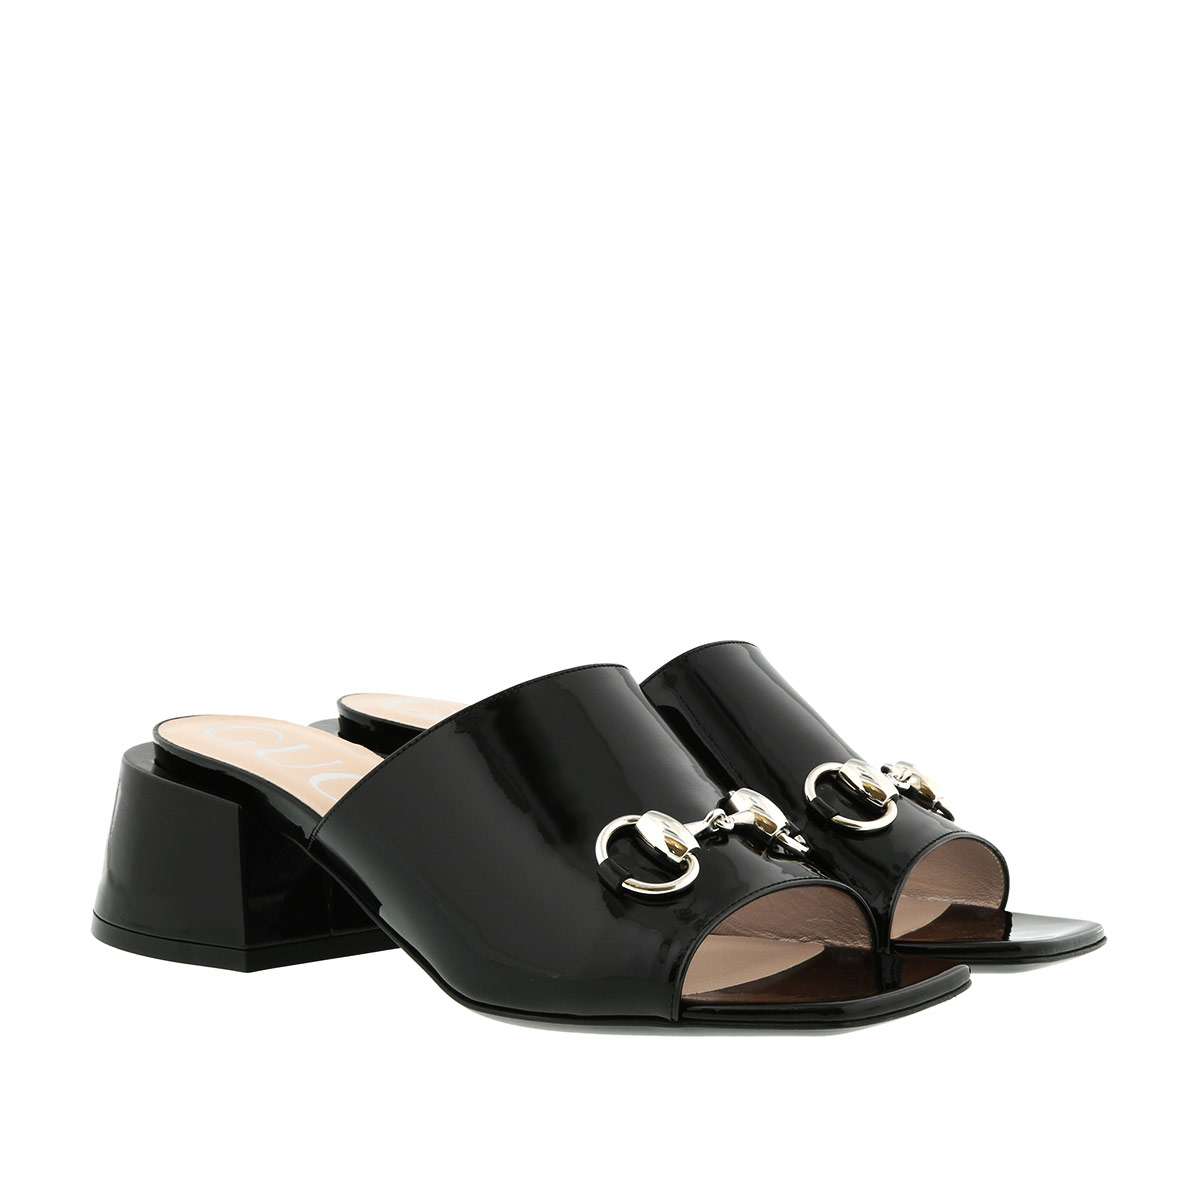 Gucci Sandalen - Mid-Heel Slide Pumps Patent Leather Black - in schwarz - für Damen